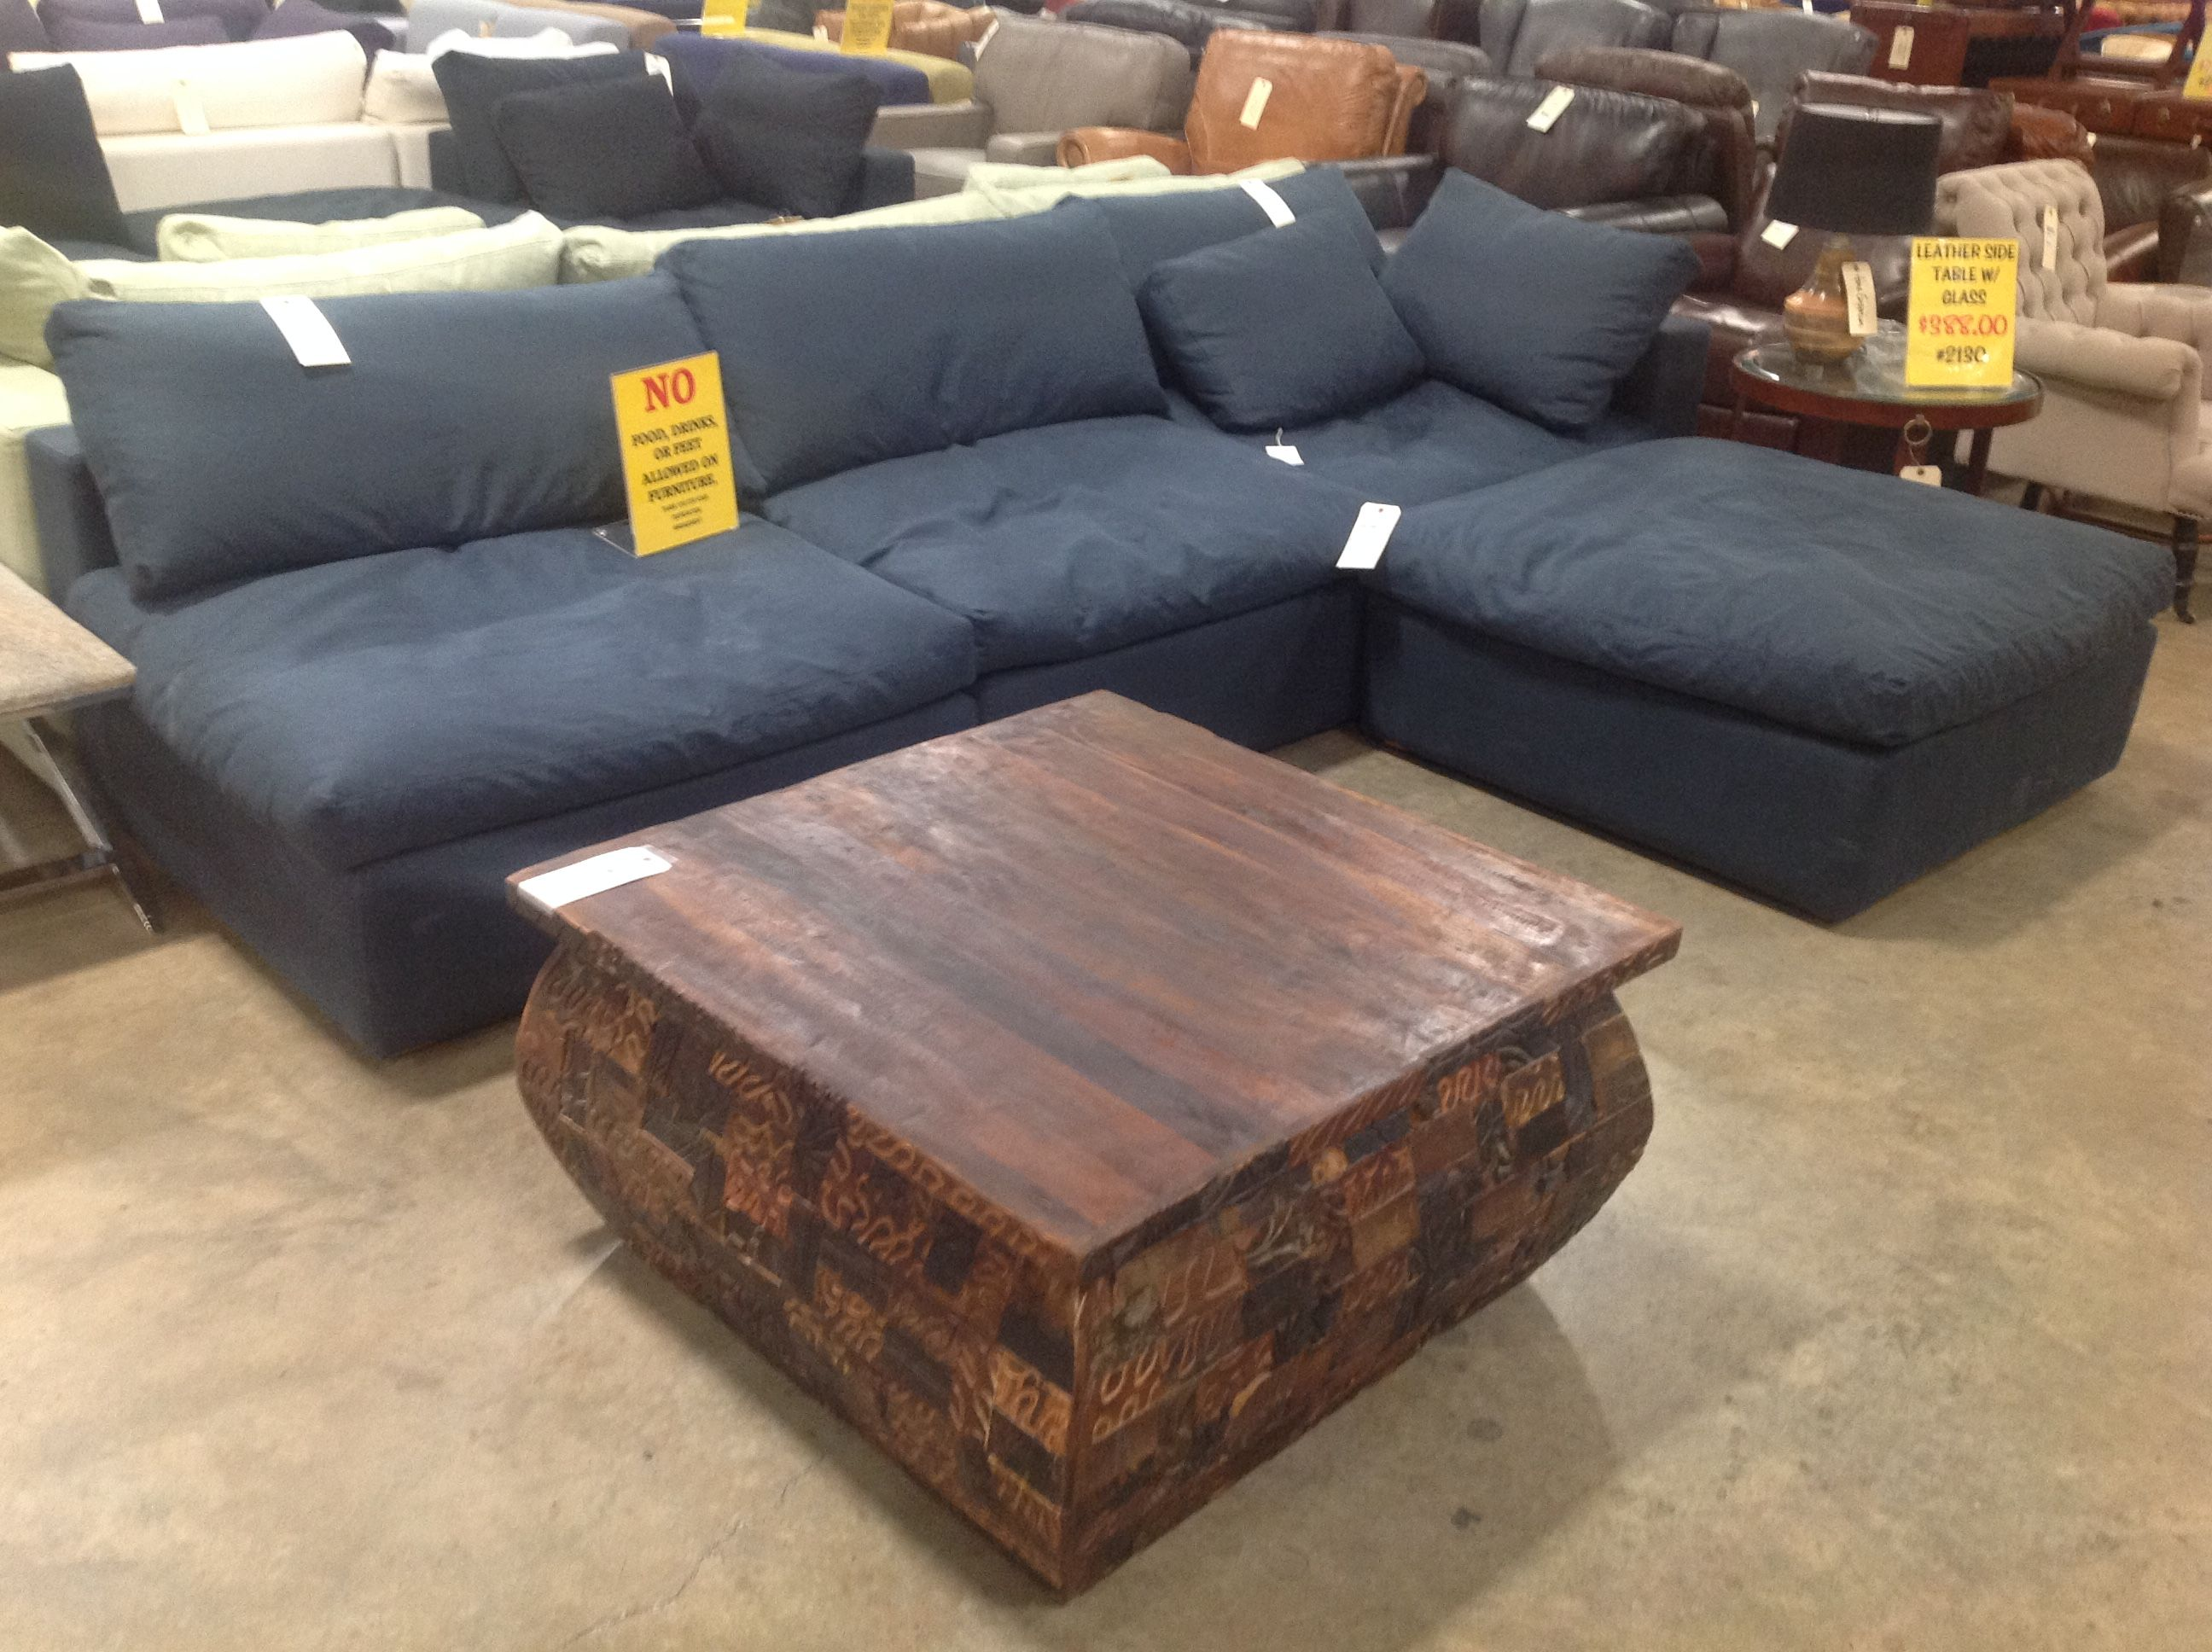 Modular Sectional With A Wood Coffee Table We Sell All Kinds Of